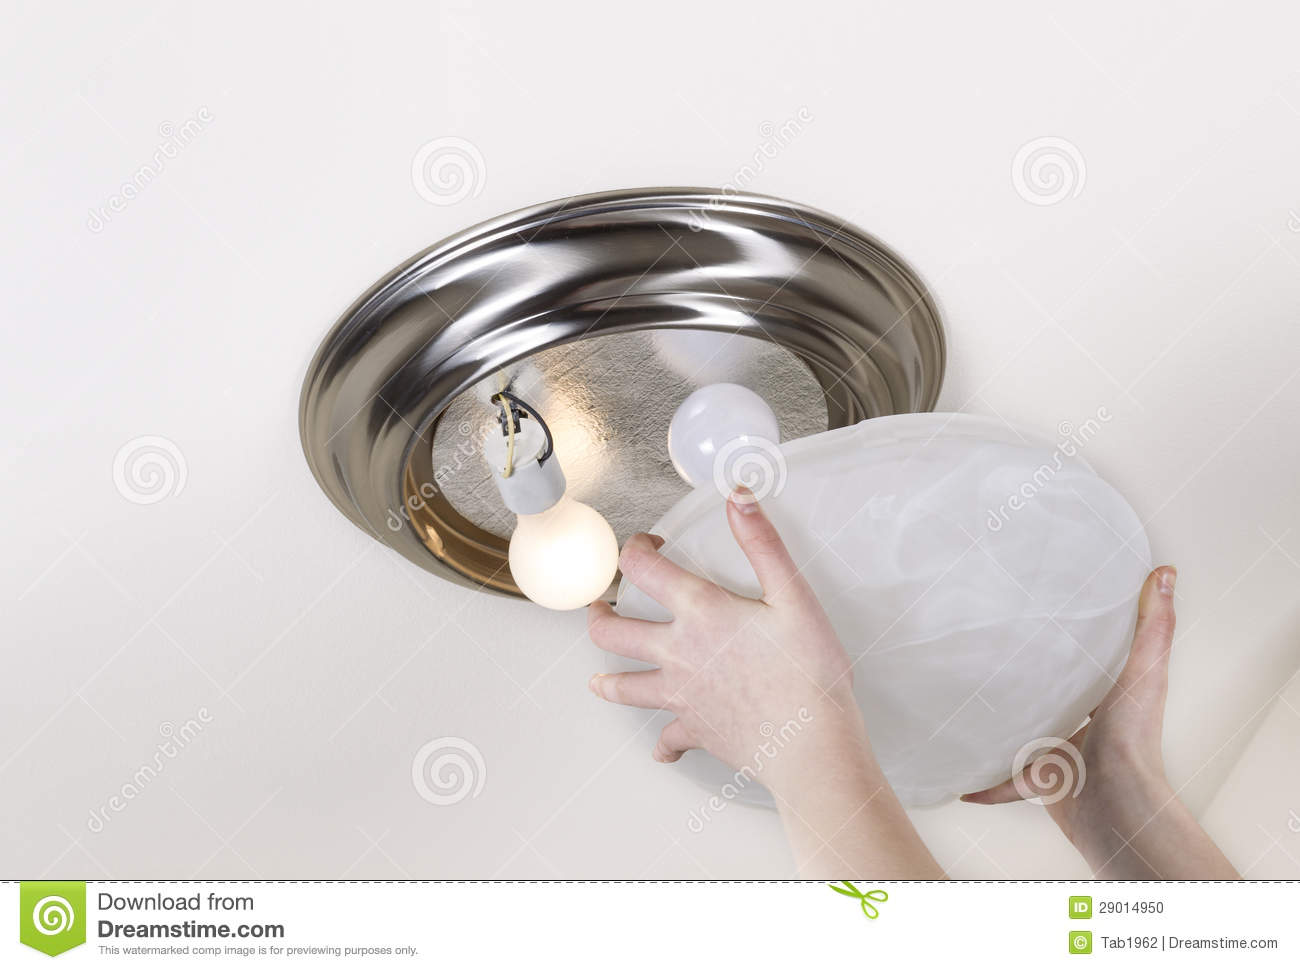 How To Replace Recessed Light Bulbs Ehow.html